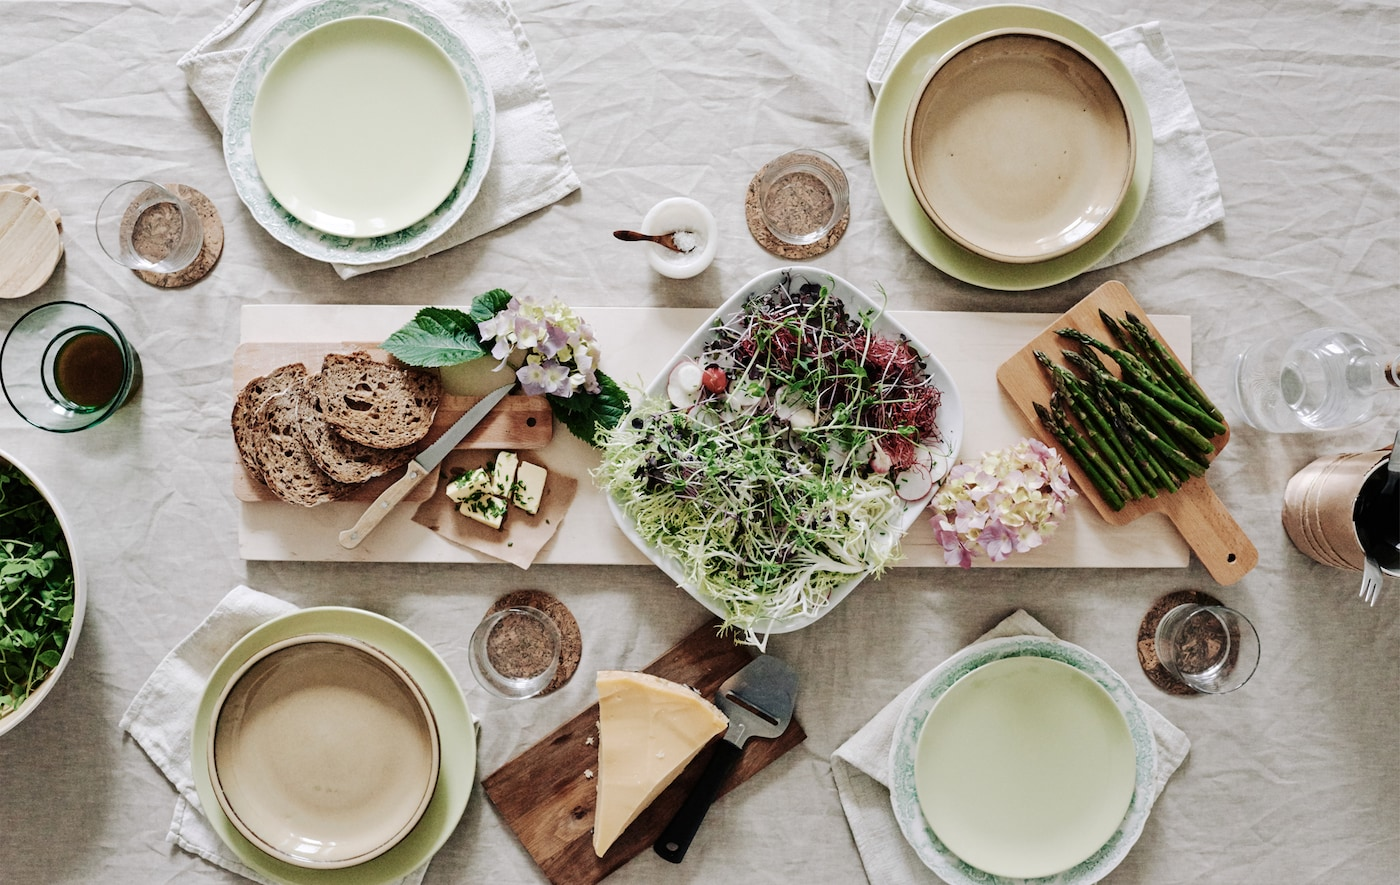 Set the table for a picnic-style lunch.